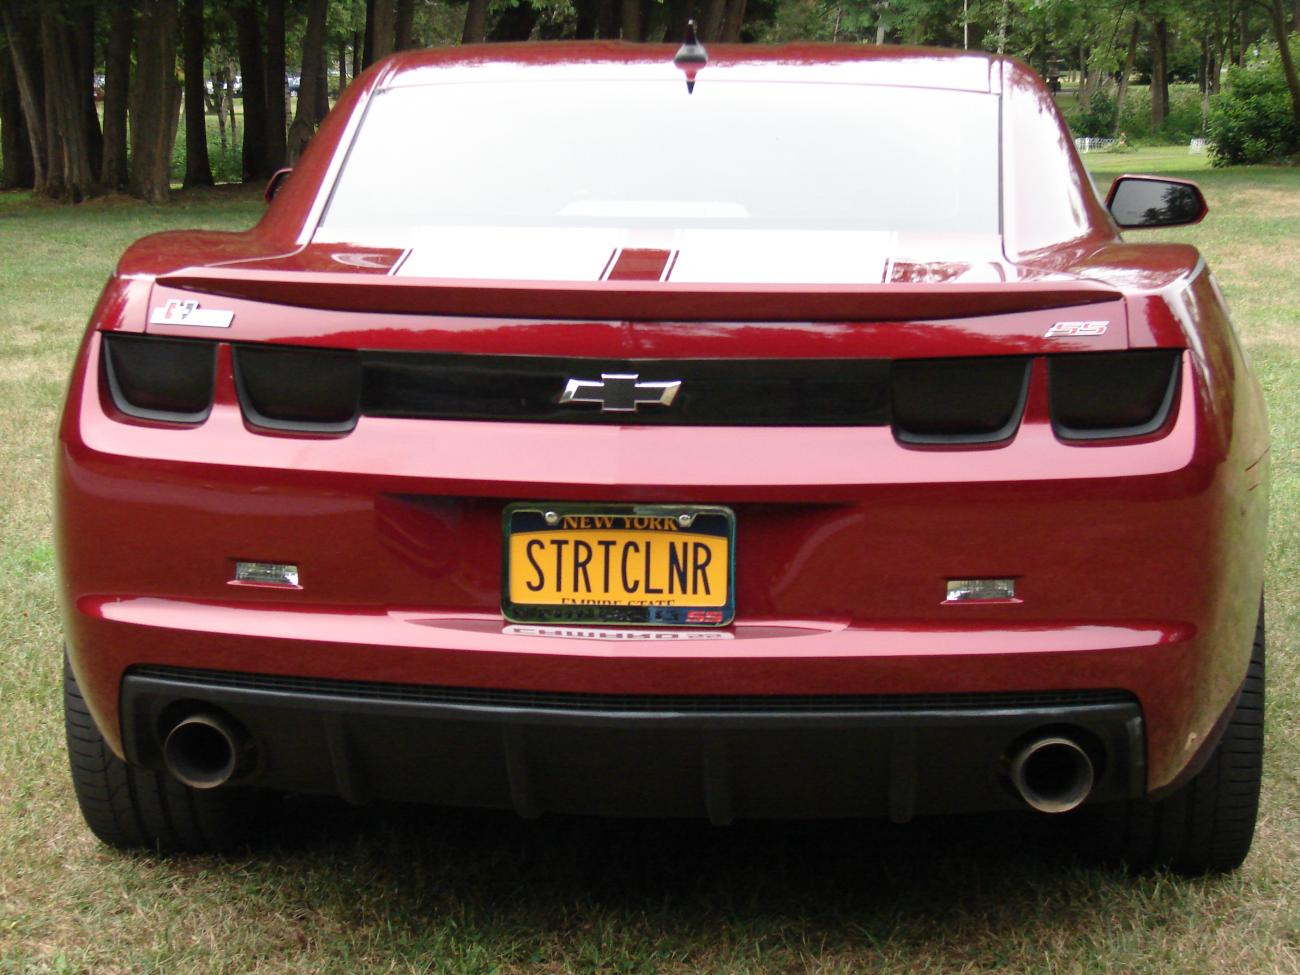 Personalized License Plate Ideas Page 2 Camaro5 Chevy